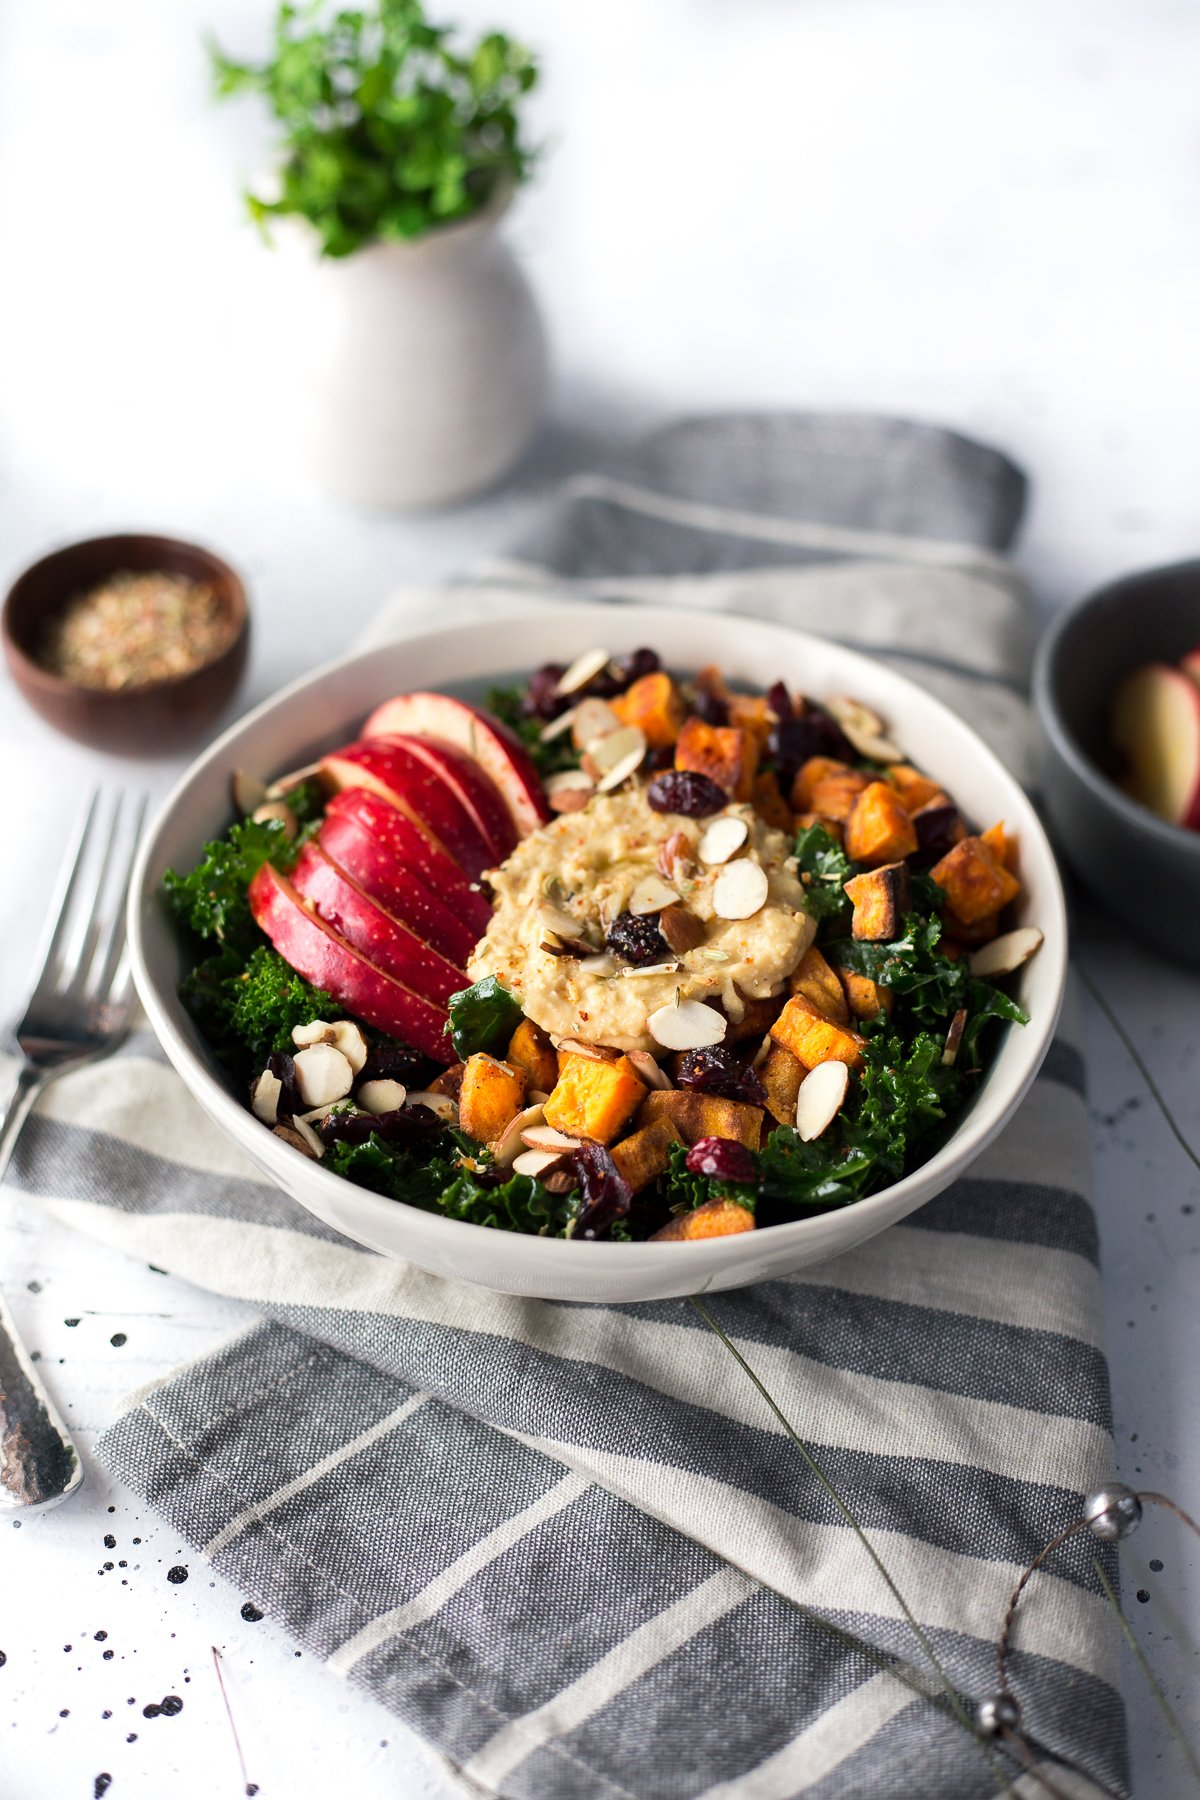 If you're in need of a hummus recipe easy enough to whip together in 30 minutes, then look no further than this amazing Winter Hummus Bowl with roasted sweet potatoes, apples, and kale. | asimplepantry.com